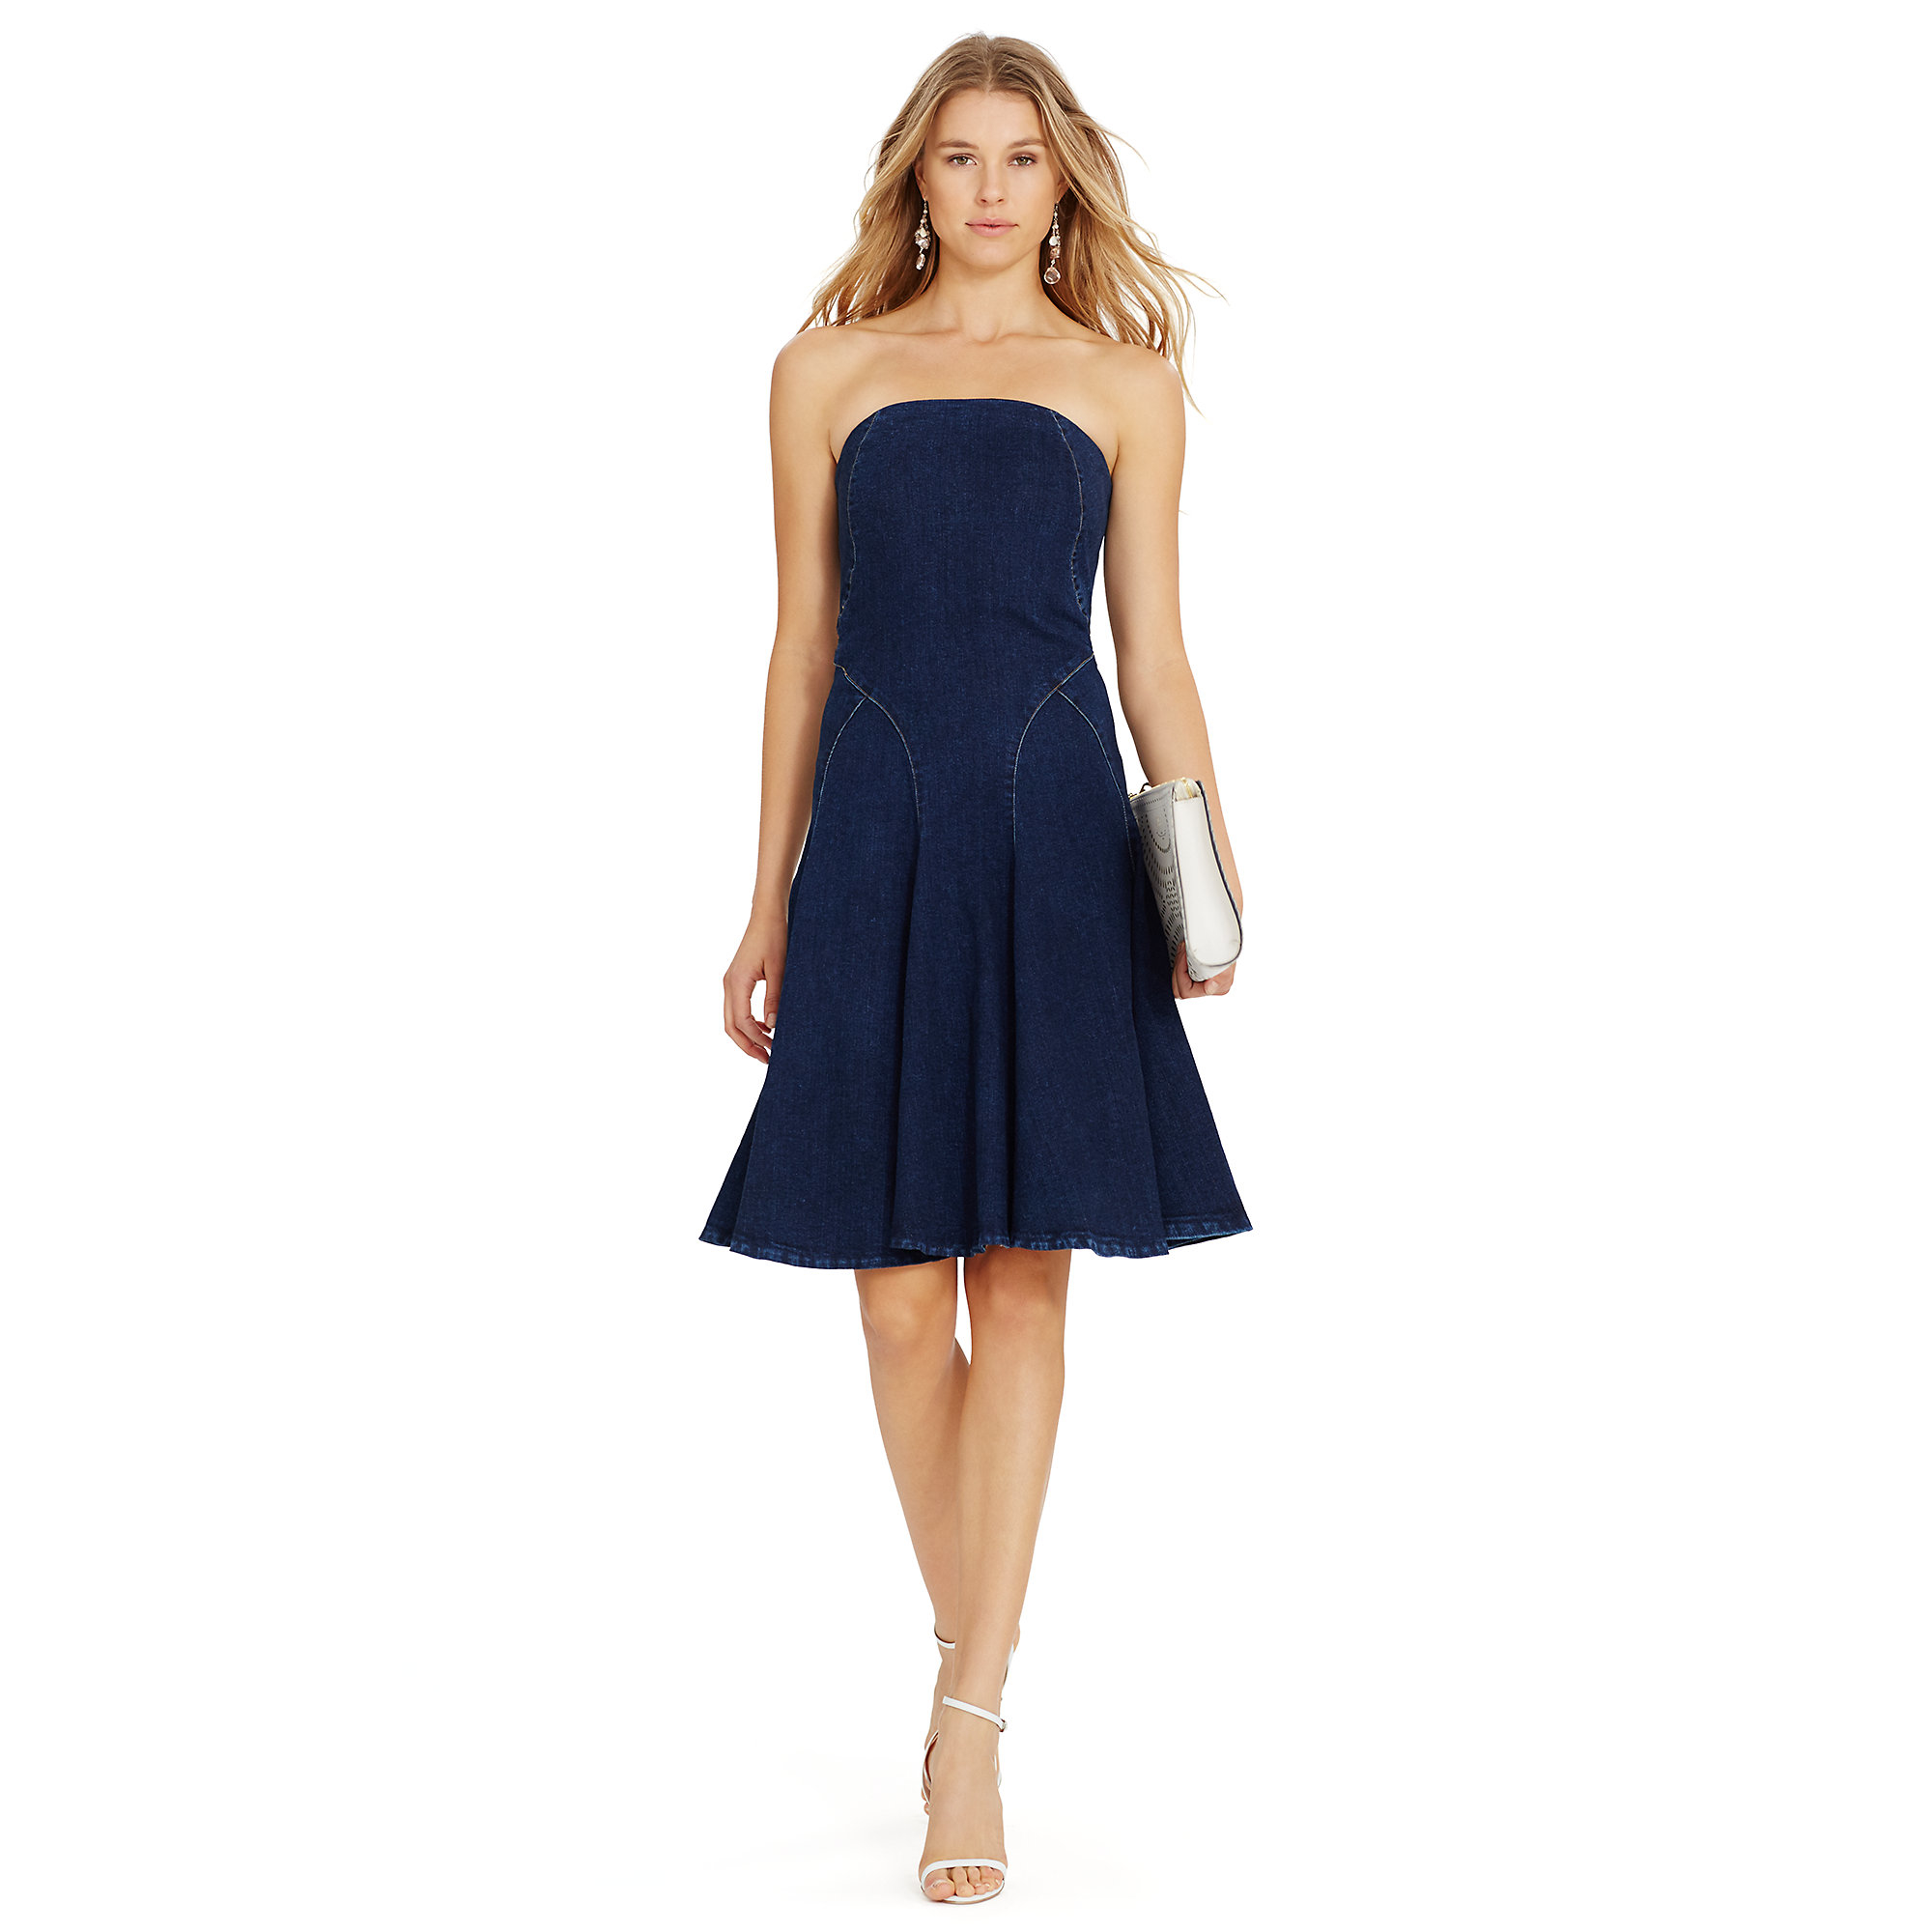 Polo ralph lauren Strapless Denim Dress in Blue | Lyst